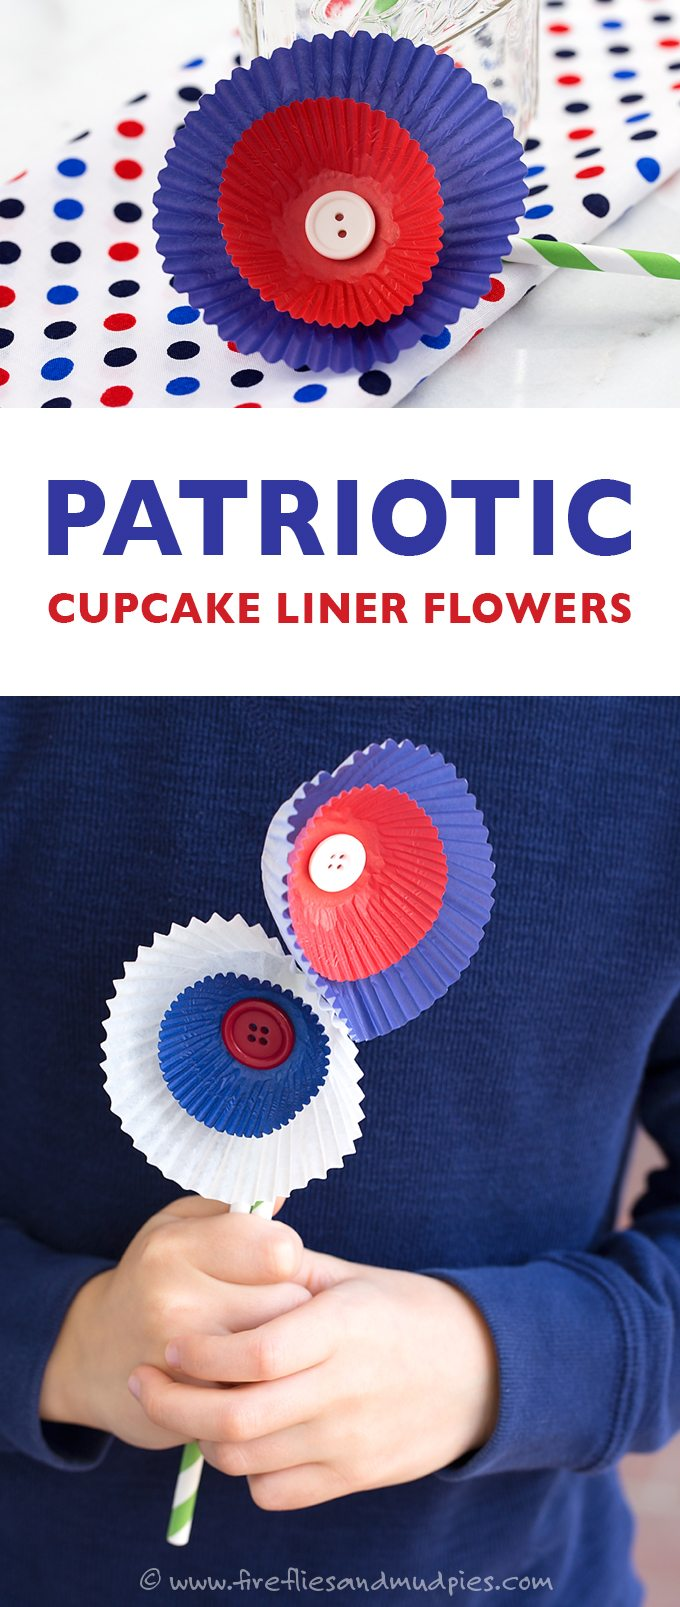 Patriotic Cupcake Liner Flowers are the perfect kid's craft for Memorial Day or 4th of July!